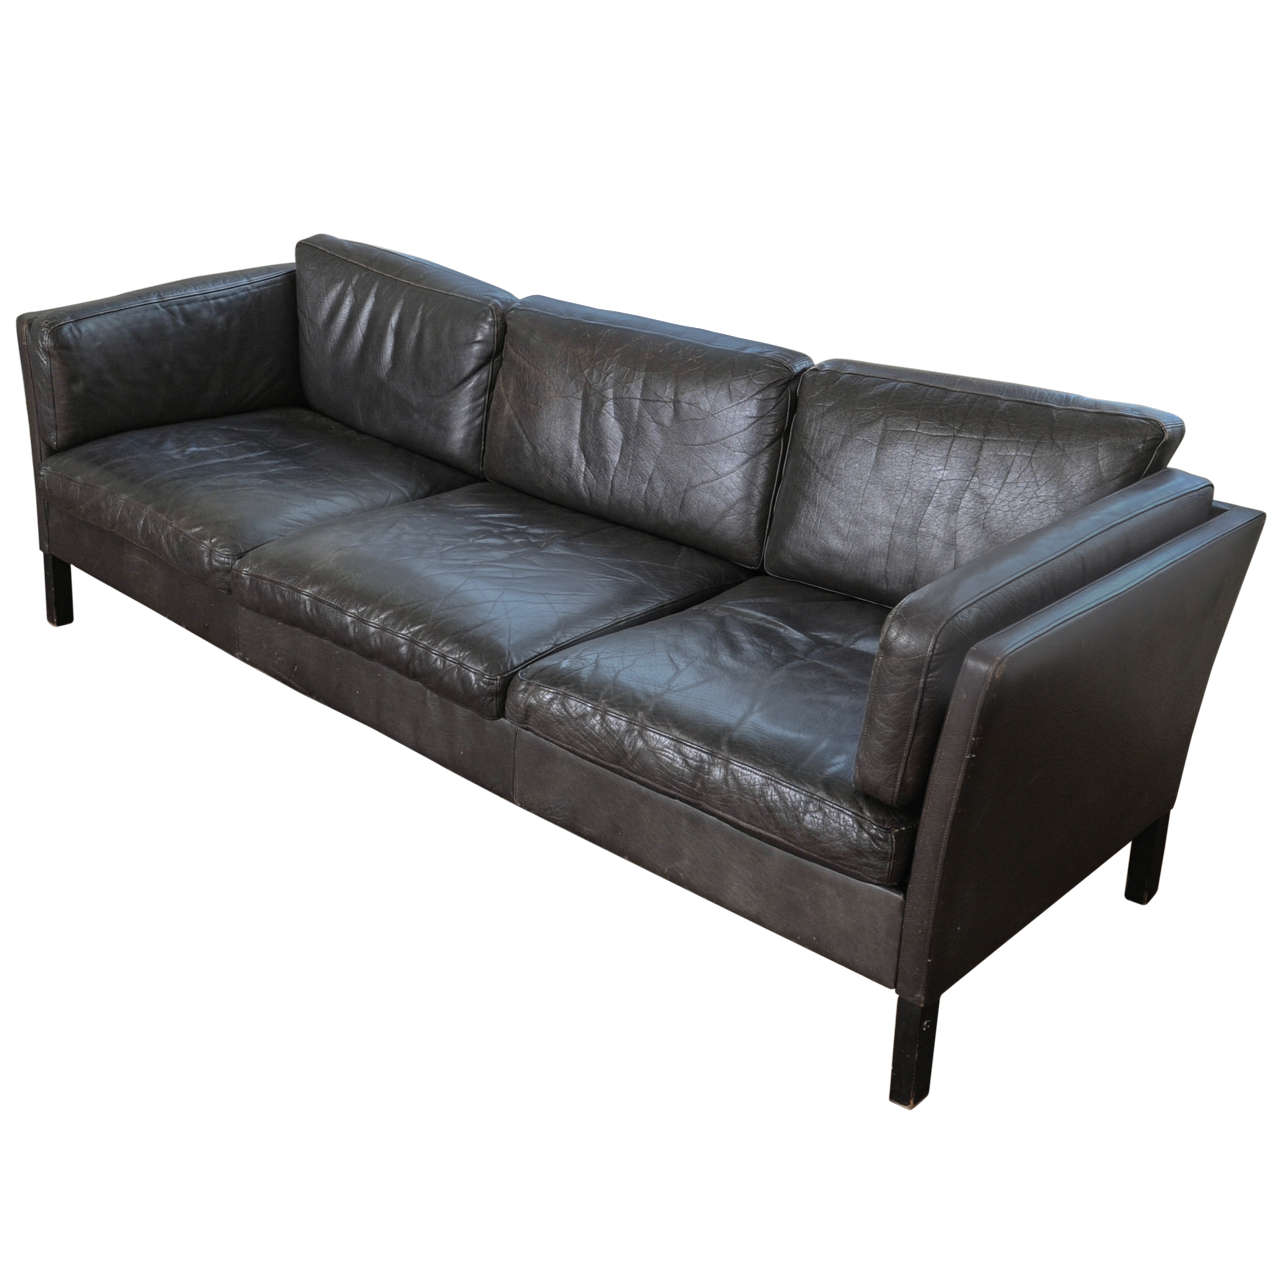 1960s Danish Three-Seat Vintage Design Sofa with Black Leather Upholstered